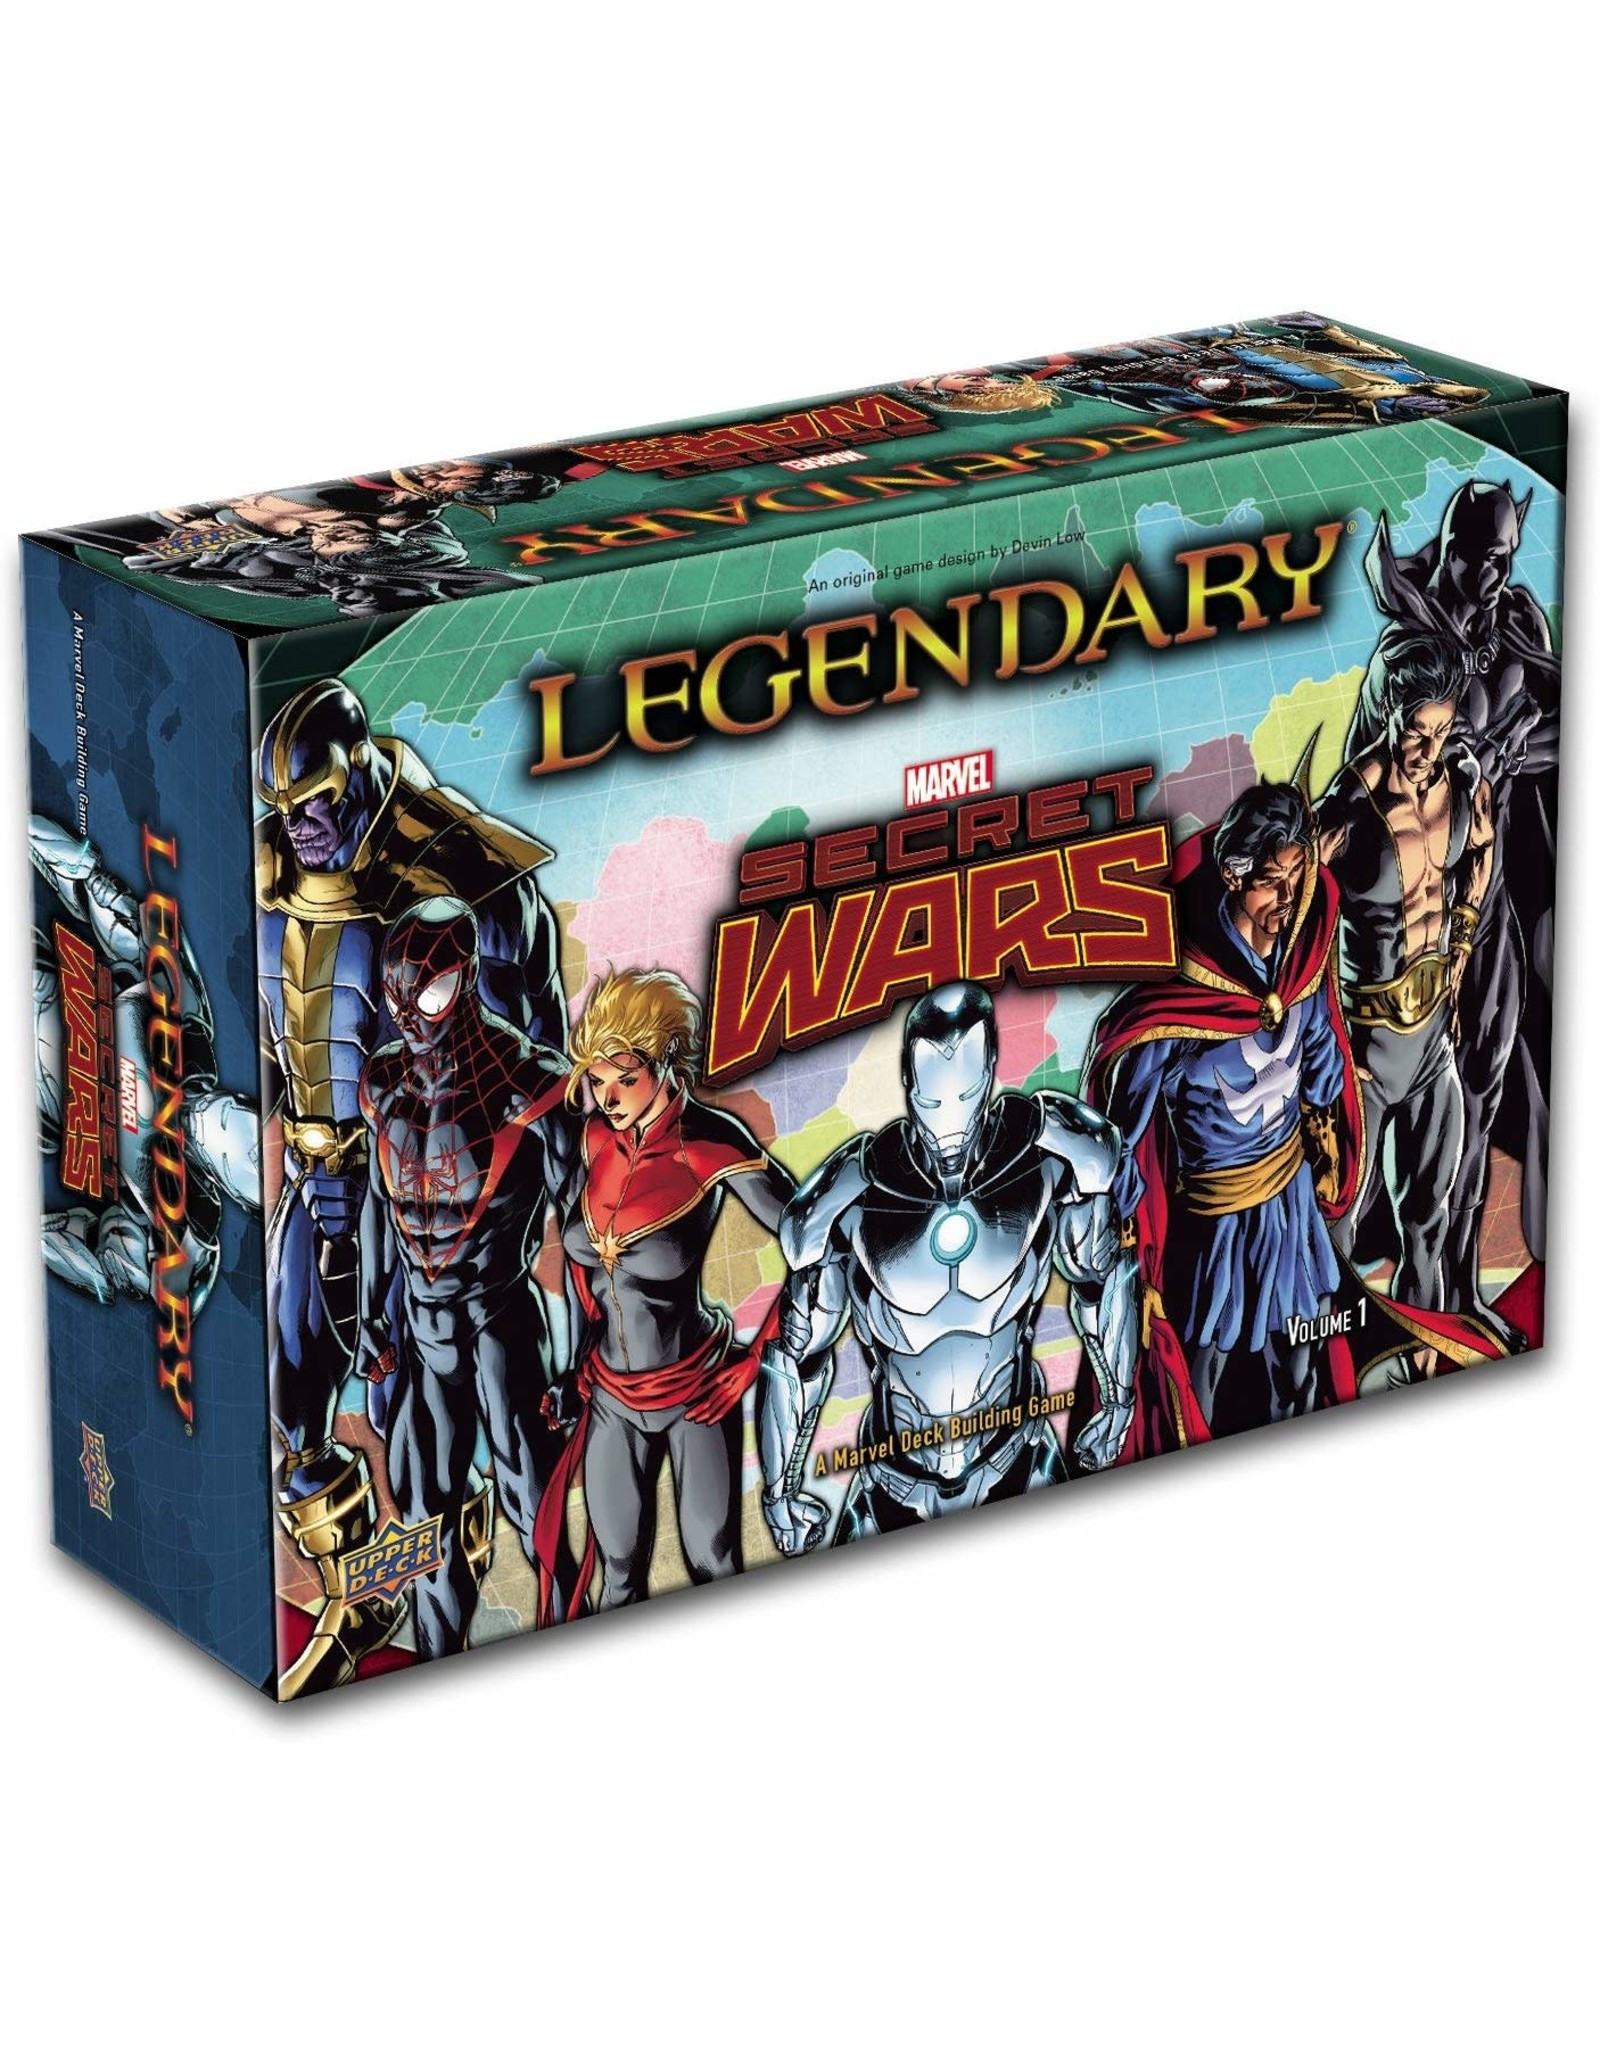 UPPER DECK MARVEL LEGENDARY DBG SECRET WARS VOLUME 1